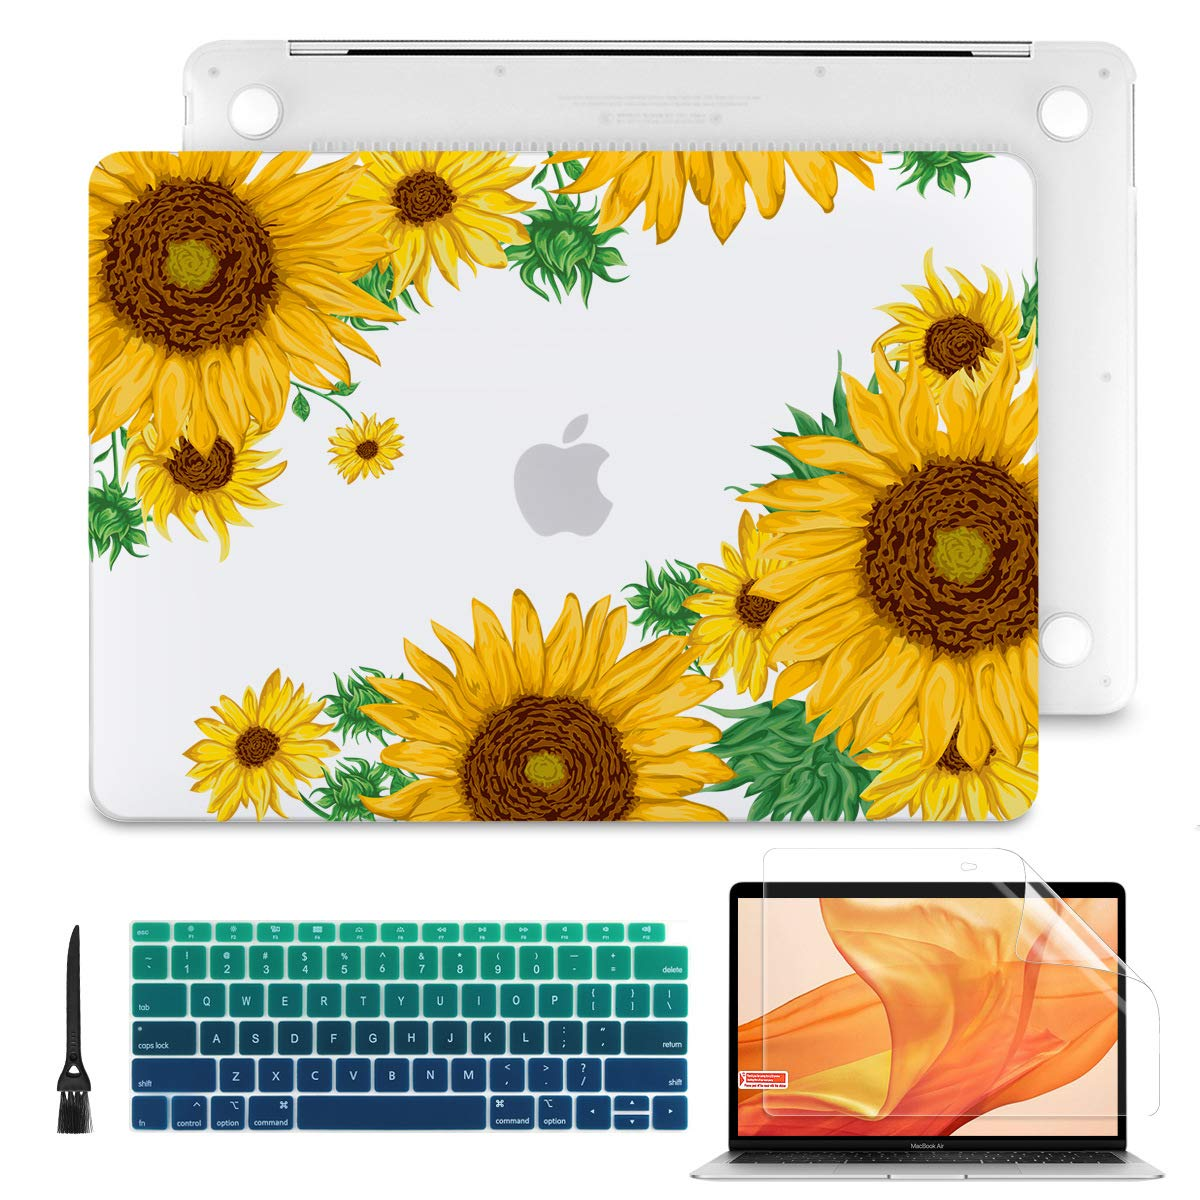 Batianda 2020 2019 2018 New MacBook Air 13 inch with Touch ID & Retina Model A2179 A1932 Flower Print Soft-Touch See Through Matte Clear Hard Shell Case Cover with Keyboard Cover Skin, Sunflower